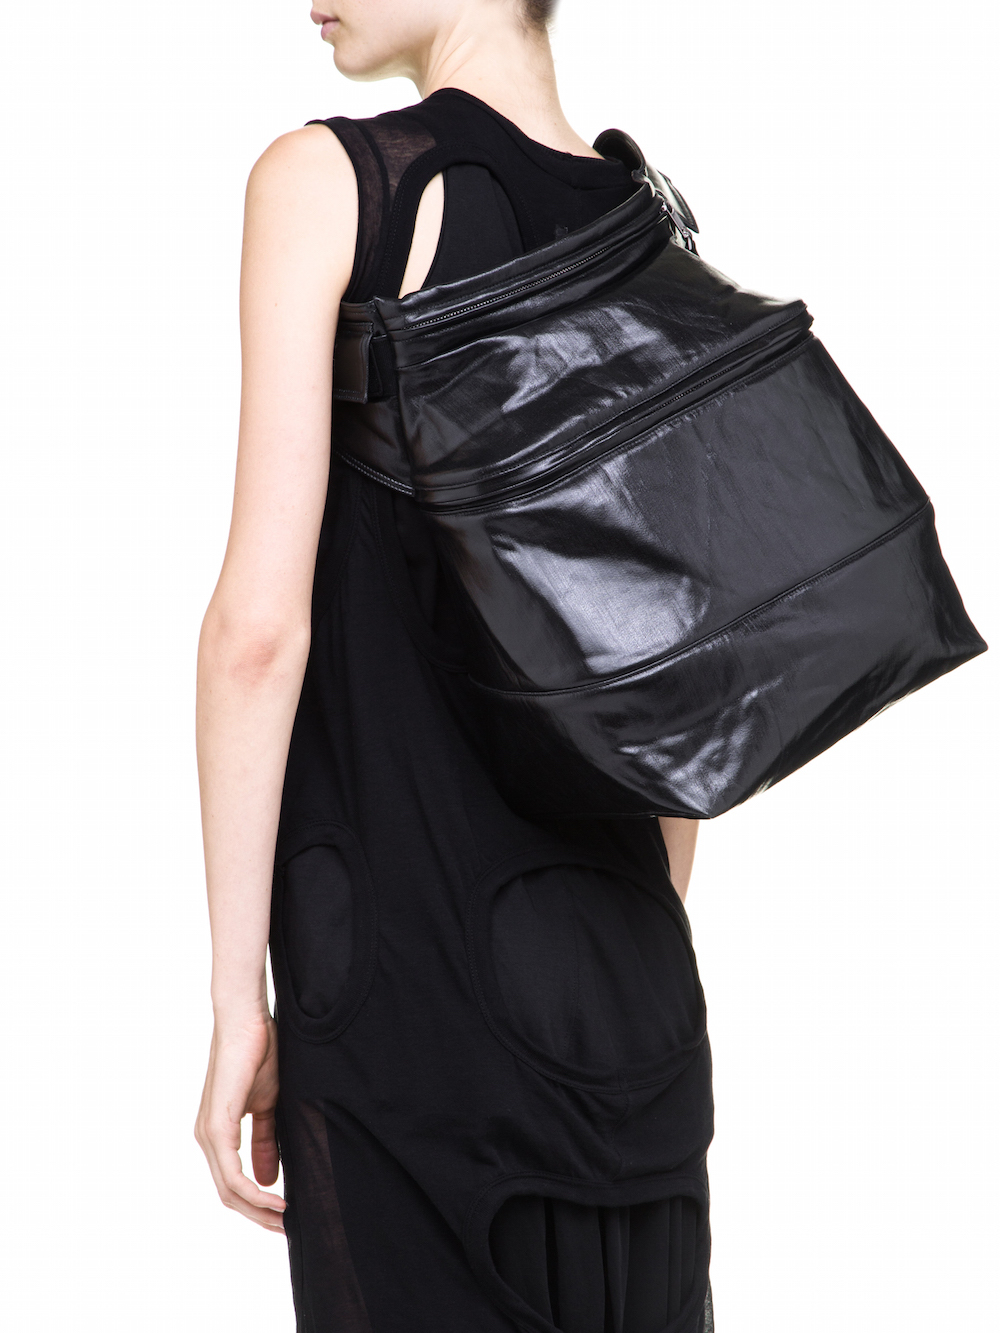 RICK OWENS FERTILITY BELT IN BLACK IS A VOLUMINOUS WAIST POUCH